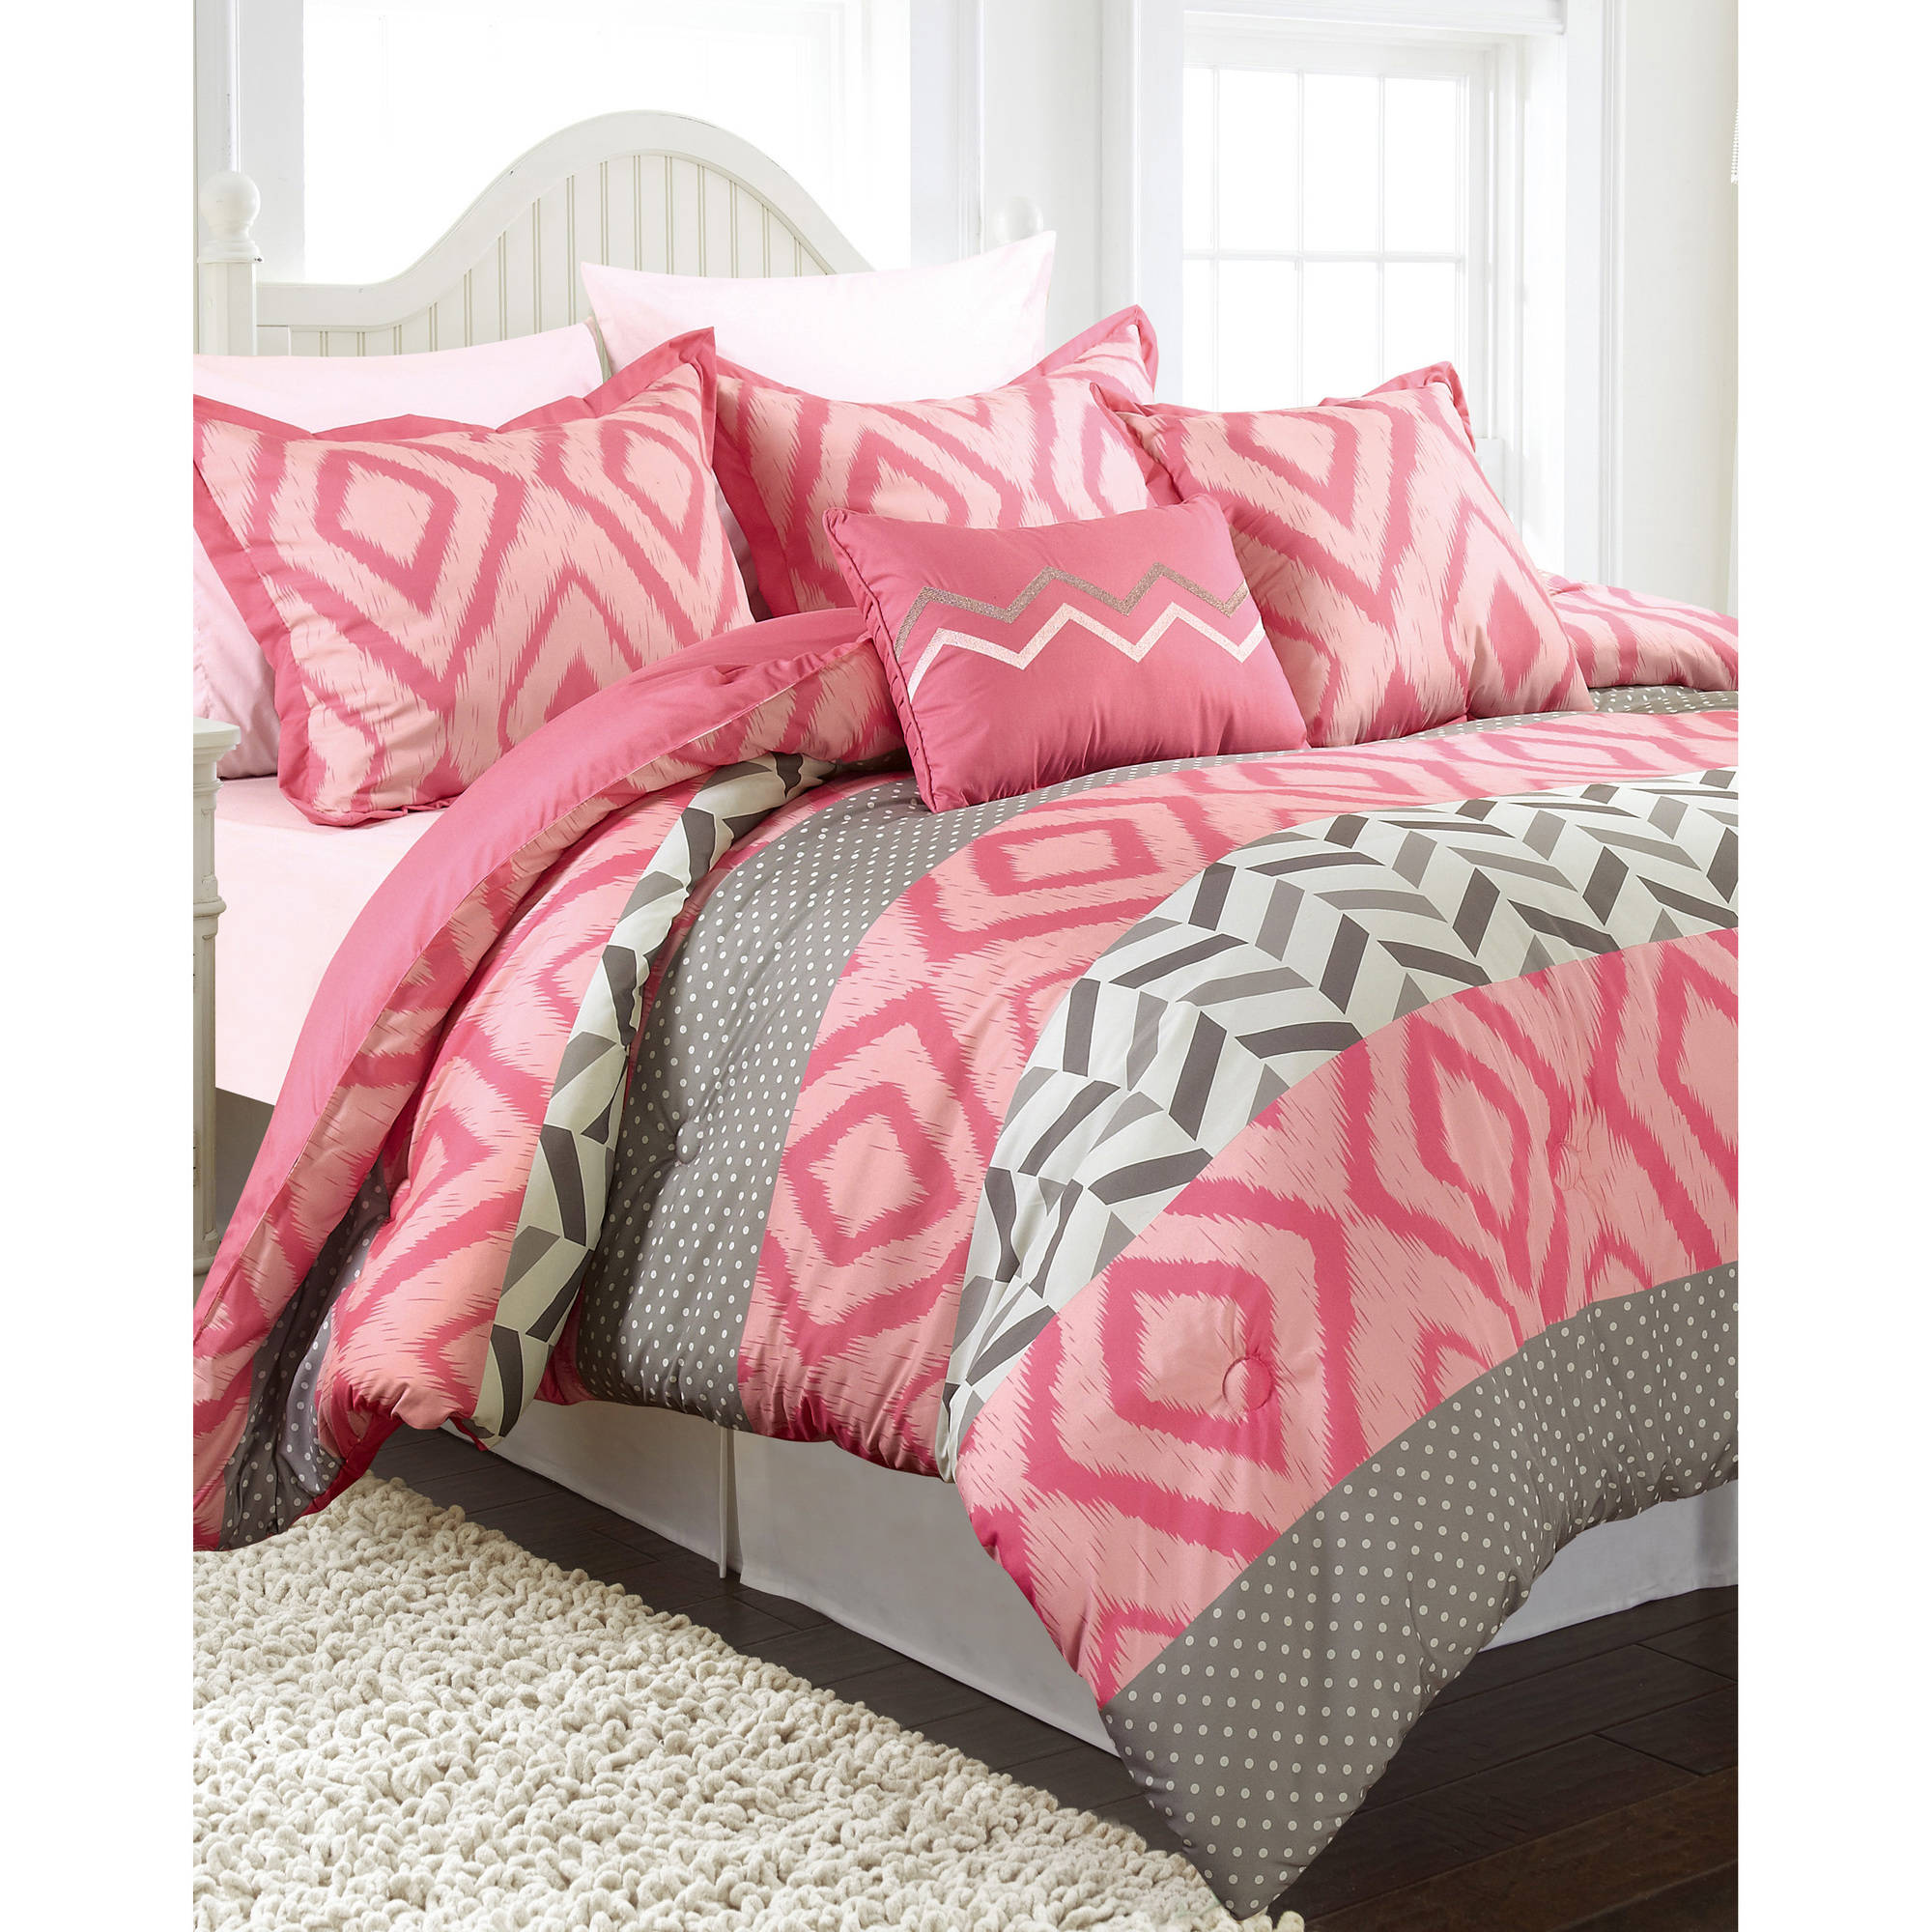 Maddy 5-Piece Bedding Comforter Set